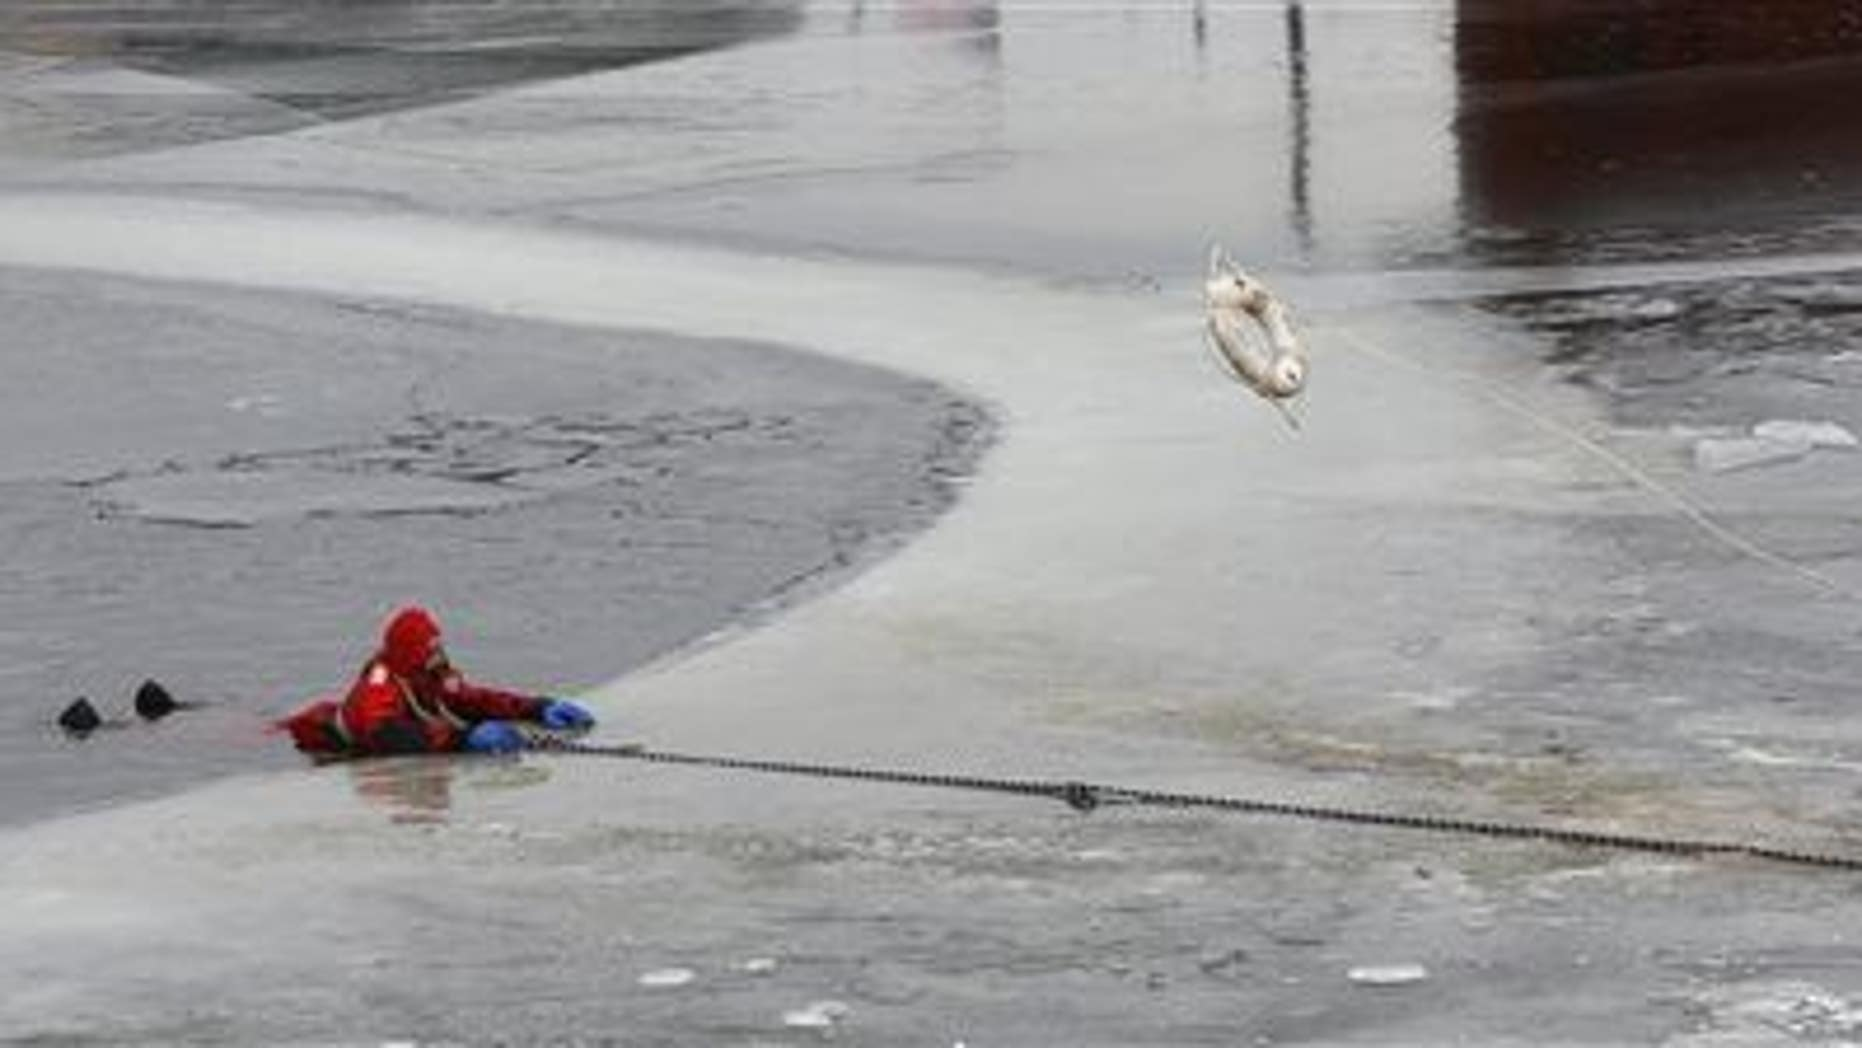 Members of the Dubuque Fire Department perform an ice-rescue training on Thursday, Dec. 4, 2014, in Dubuque, Iowa.